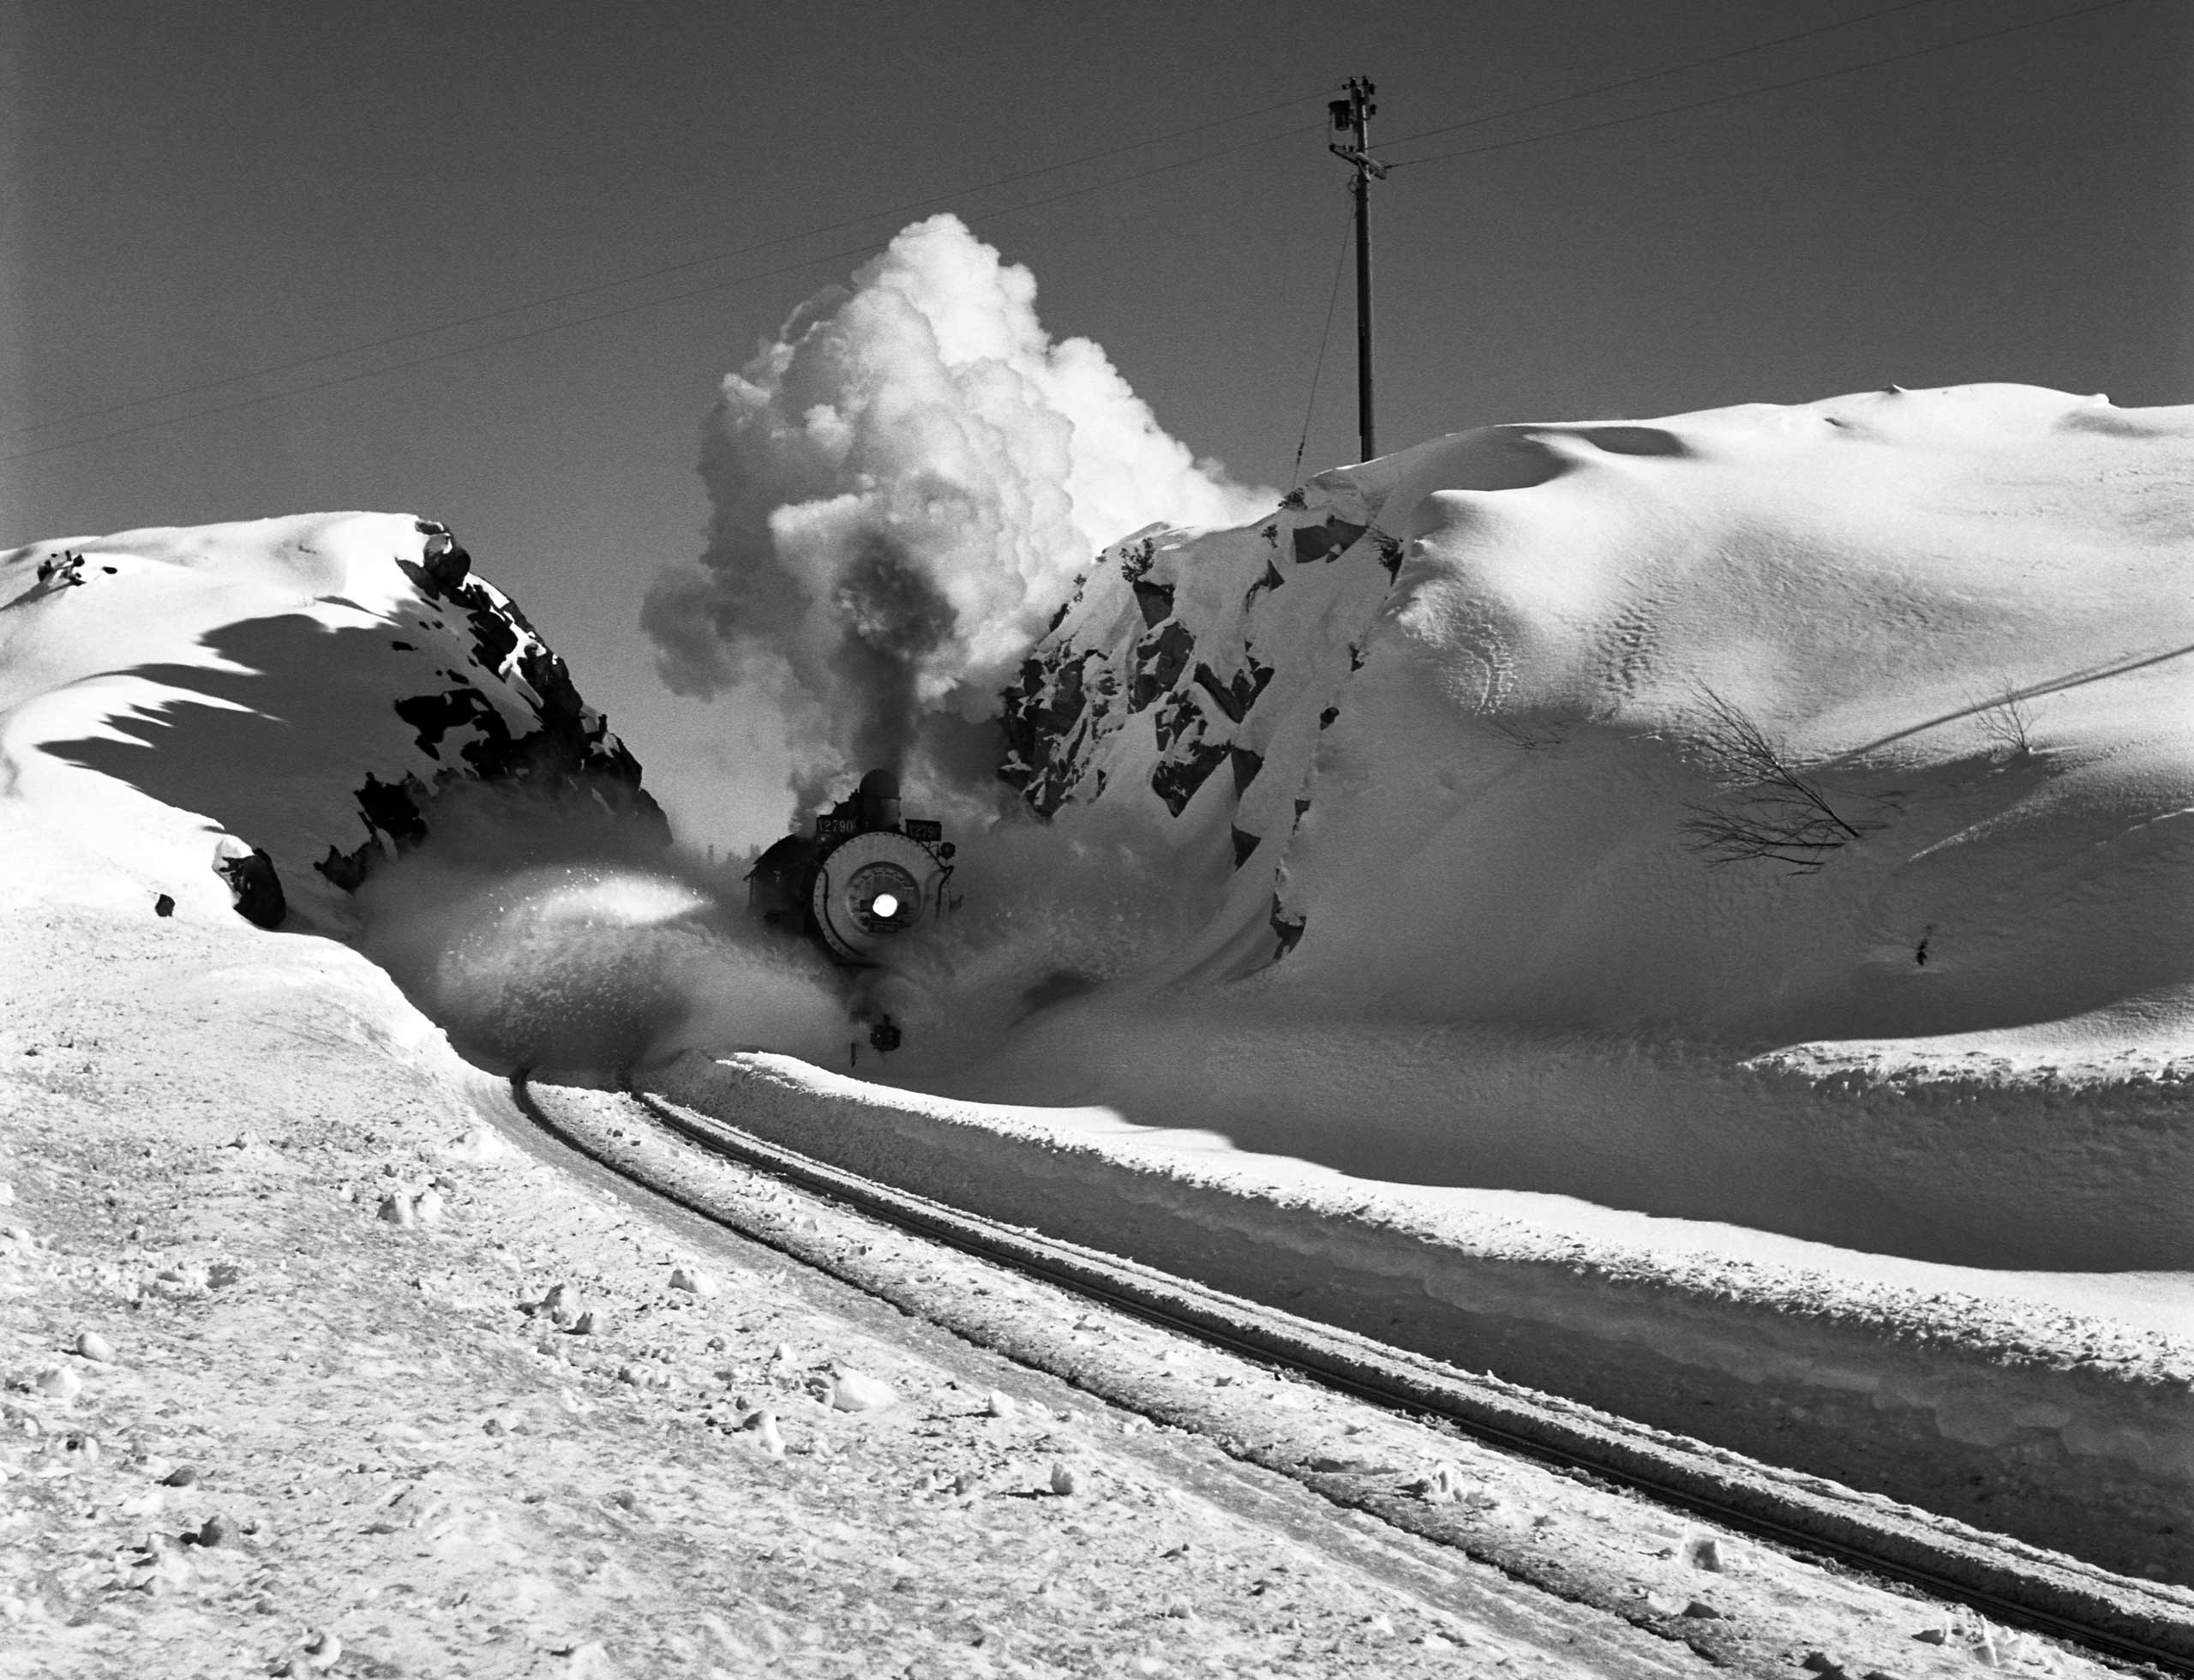 Southern Pacific locomotive using a plow to clear snow from tracks in Donner Pass, five miles west of Soda Springs, Calif., 1949.